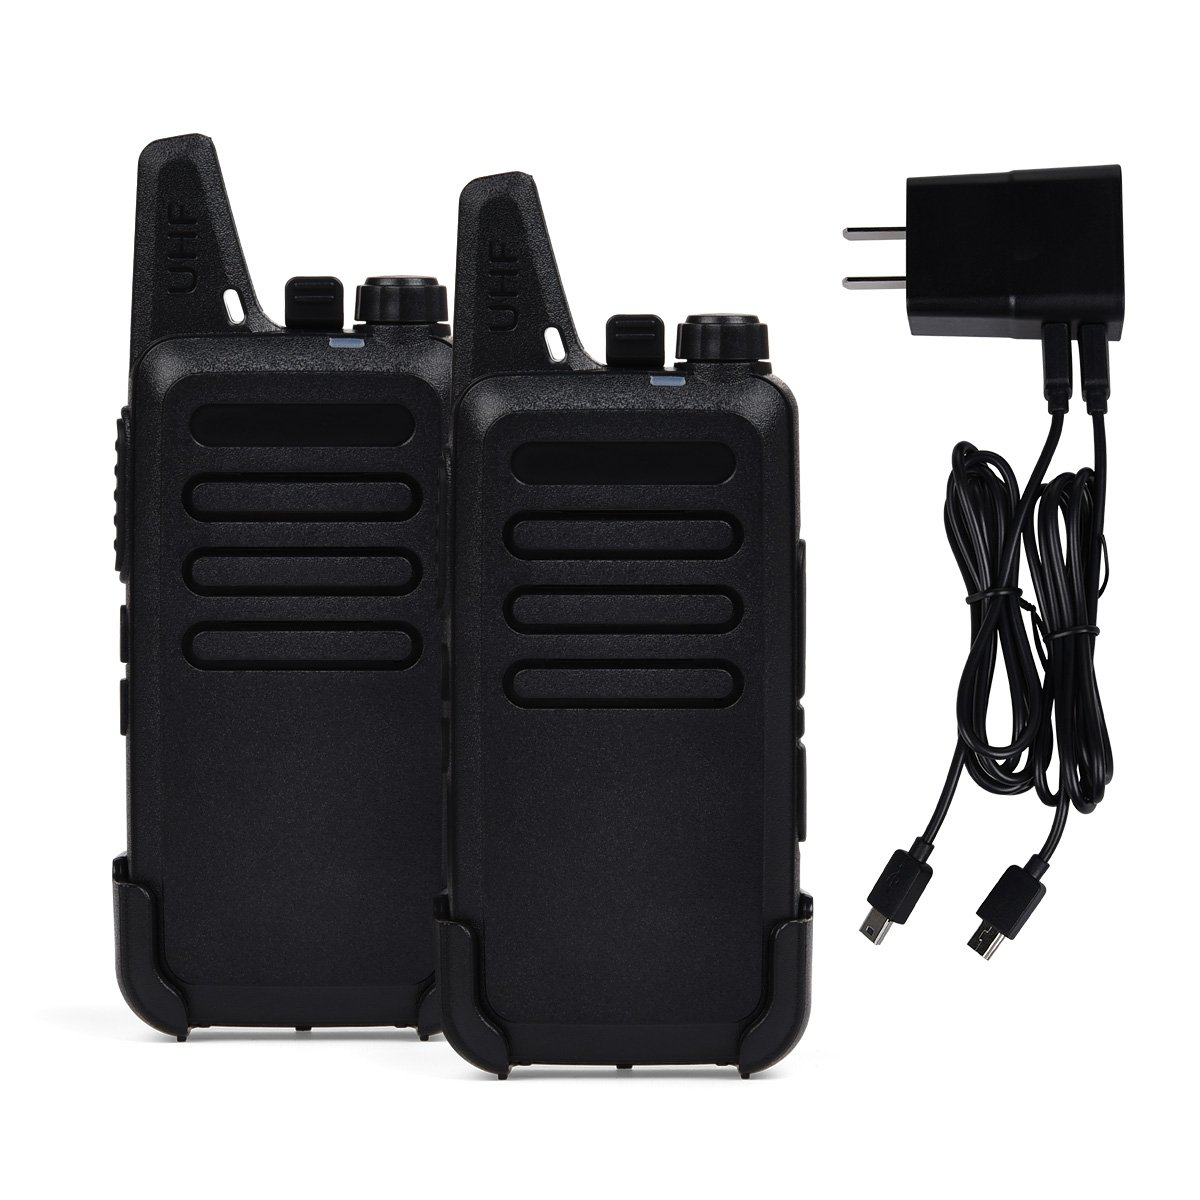 Rechargeable Kids Walkie Talkies Professional Interphone for Hunting for Police BF-888S two way radios Long range Rechargeable with Charger earphone (without Earpiece) walkie talkie with charger